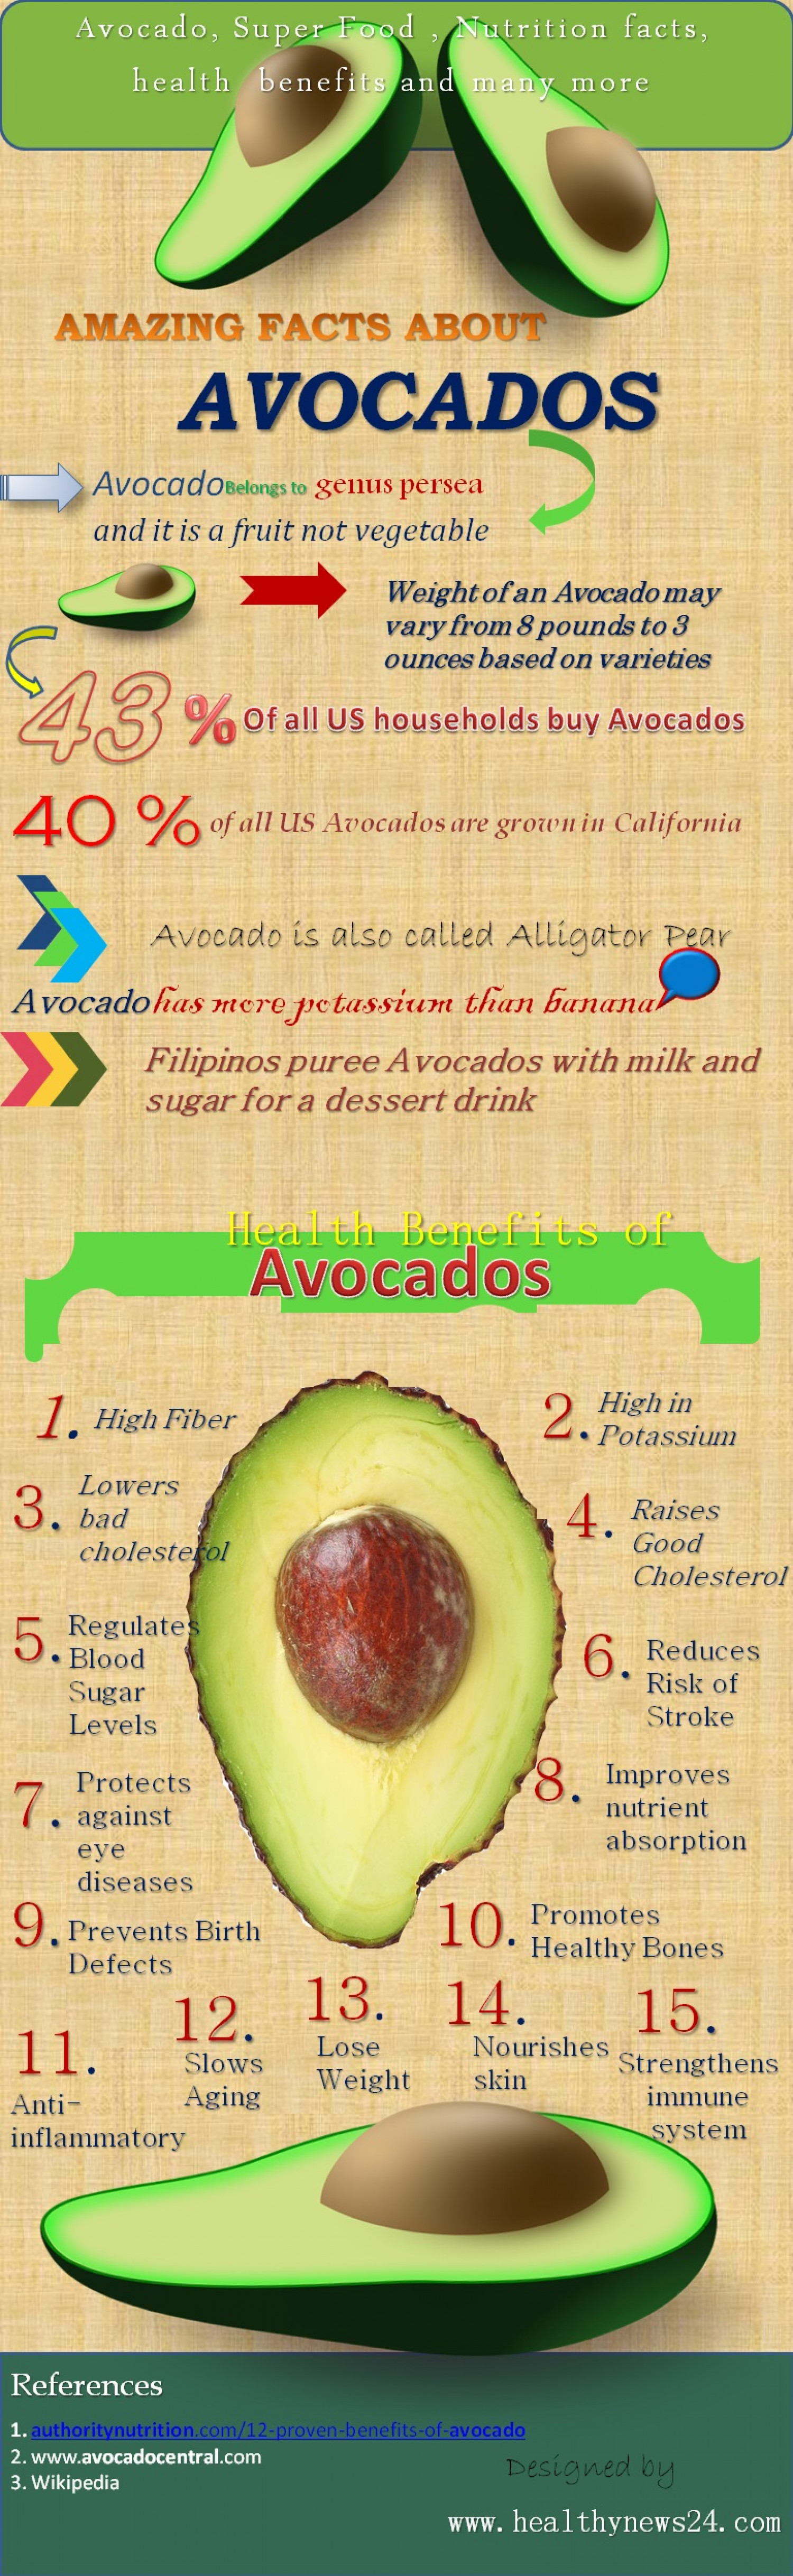 Avocado health benefits infographic